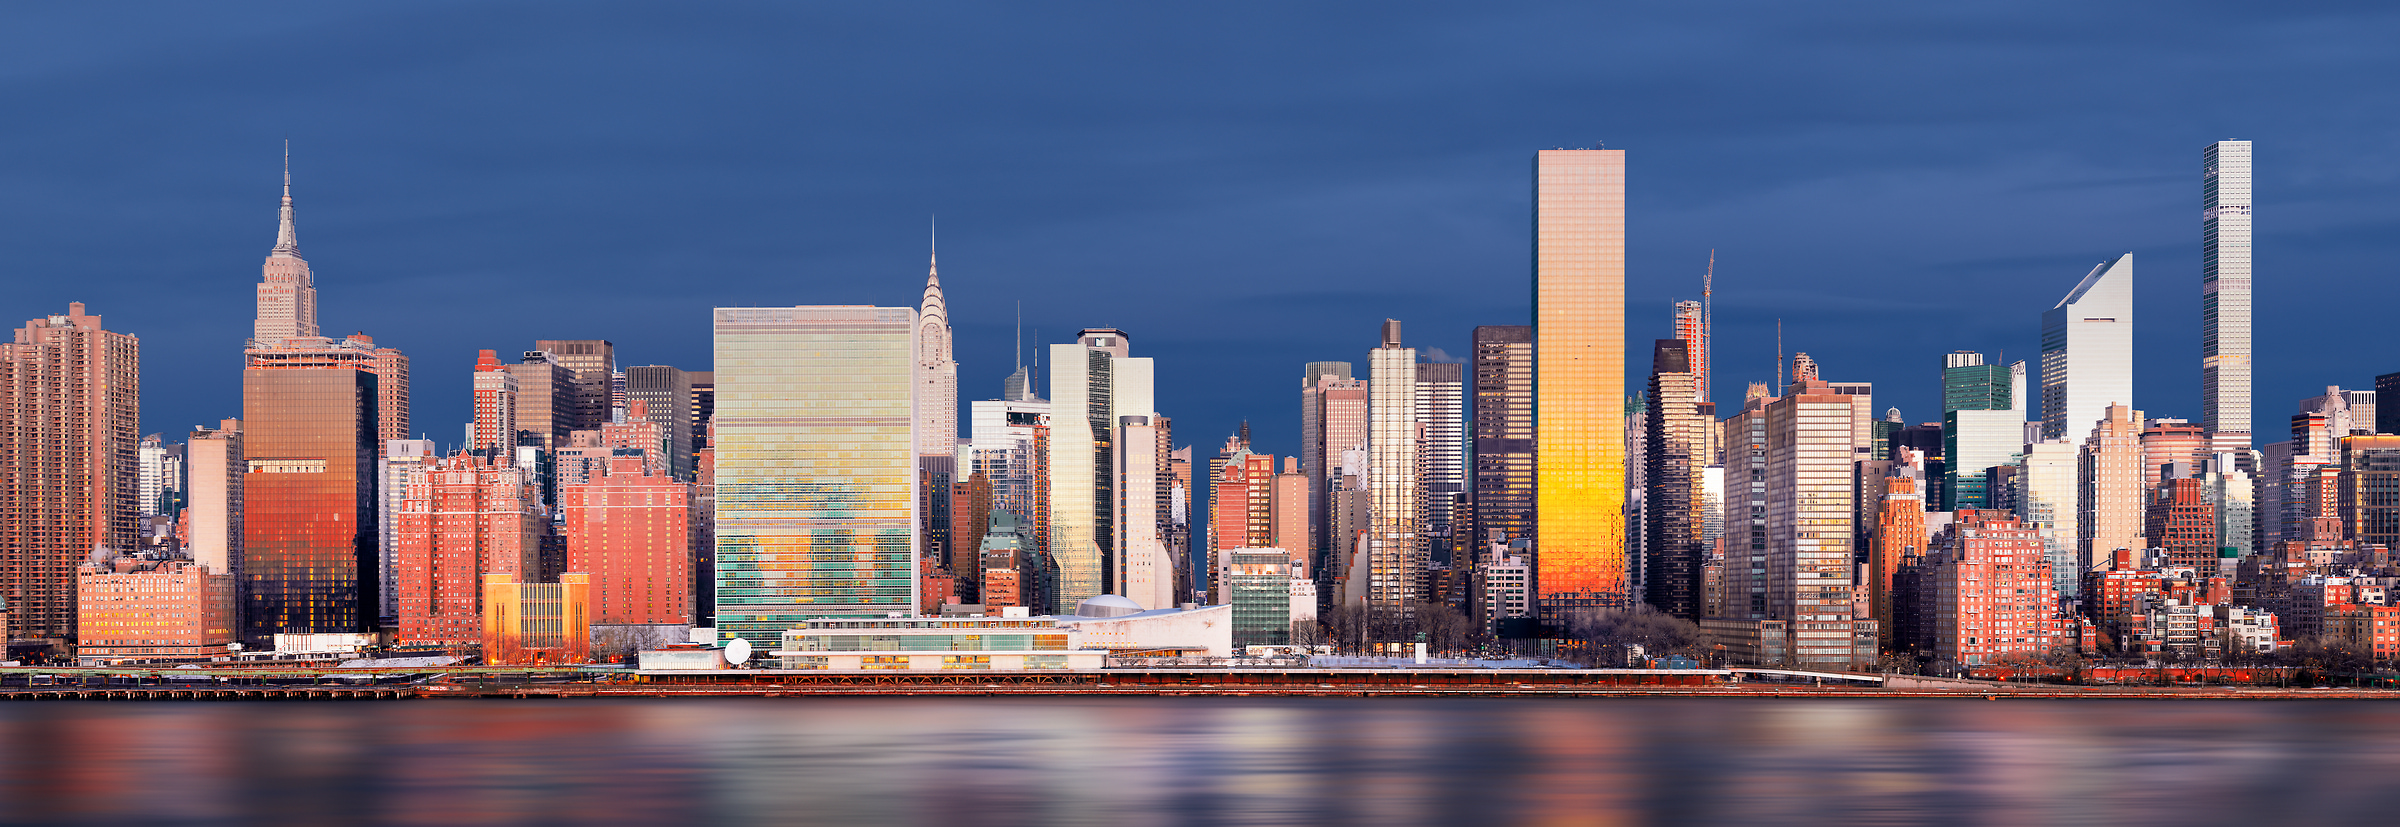 986 megapixels! A very high resolution, large-format VAST photo of the New York City skyline; gigapixel photograph created by Dan Piech in Manhattan